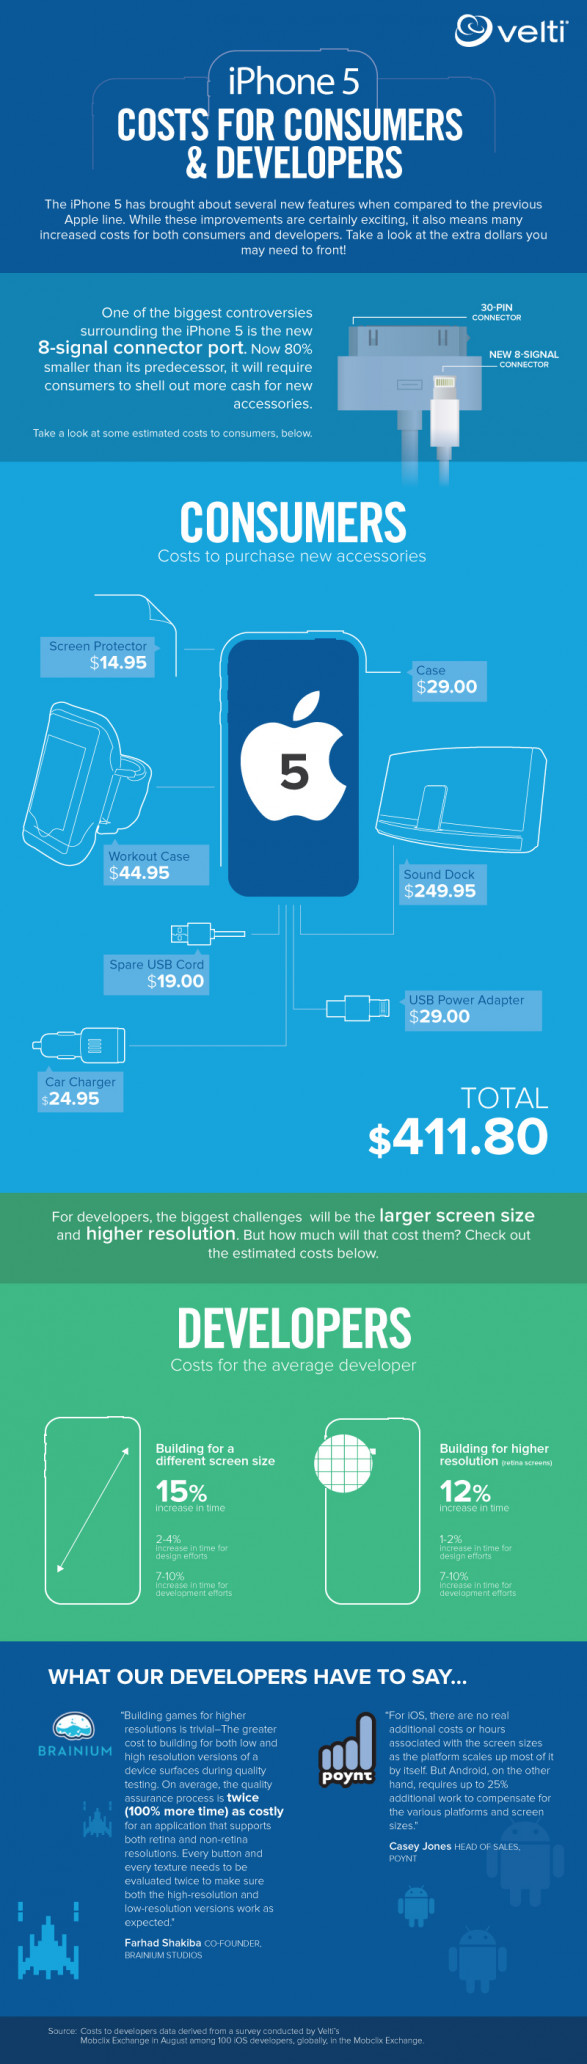 Consumers and Developers Costs for iPhone5